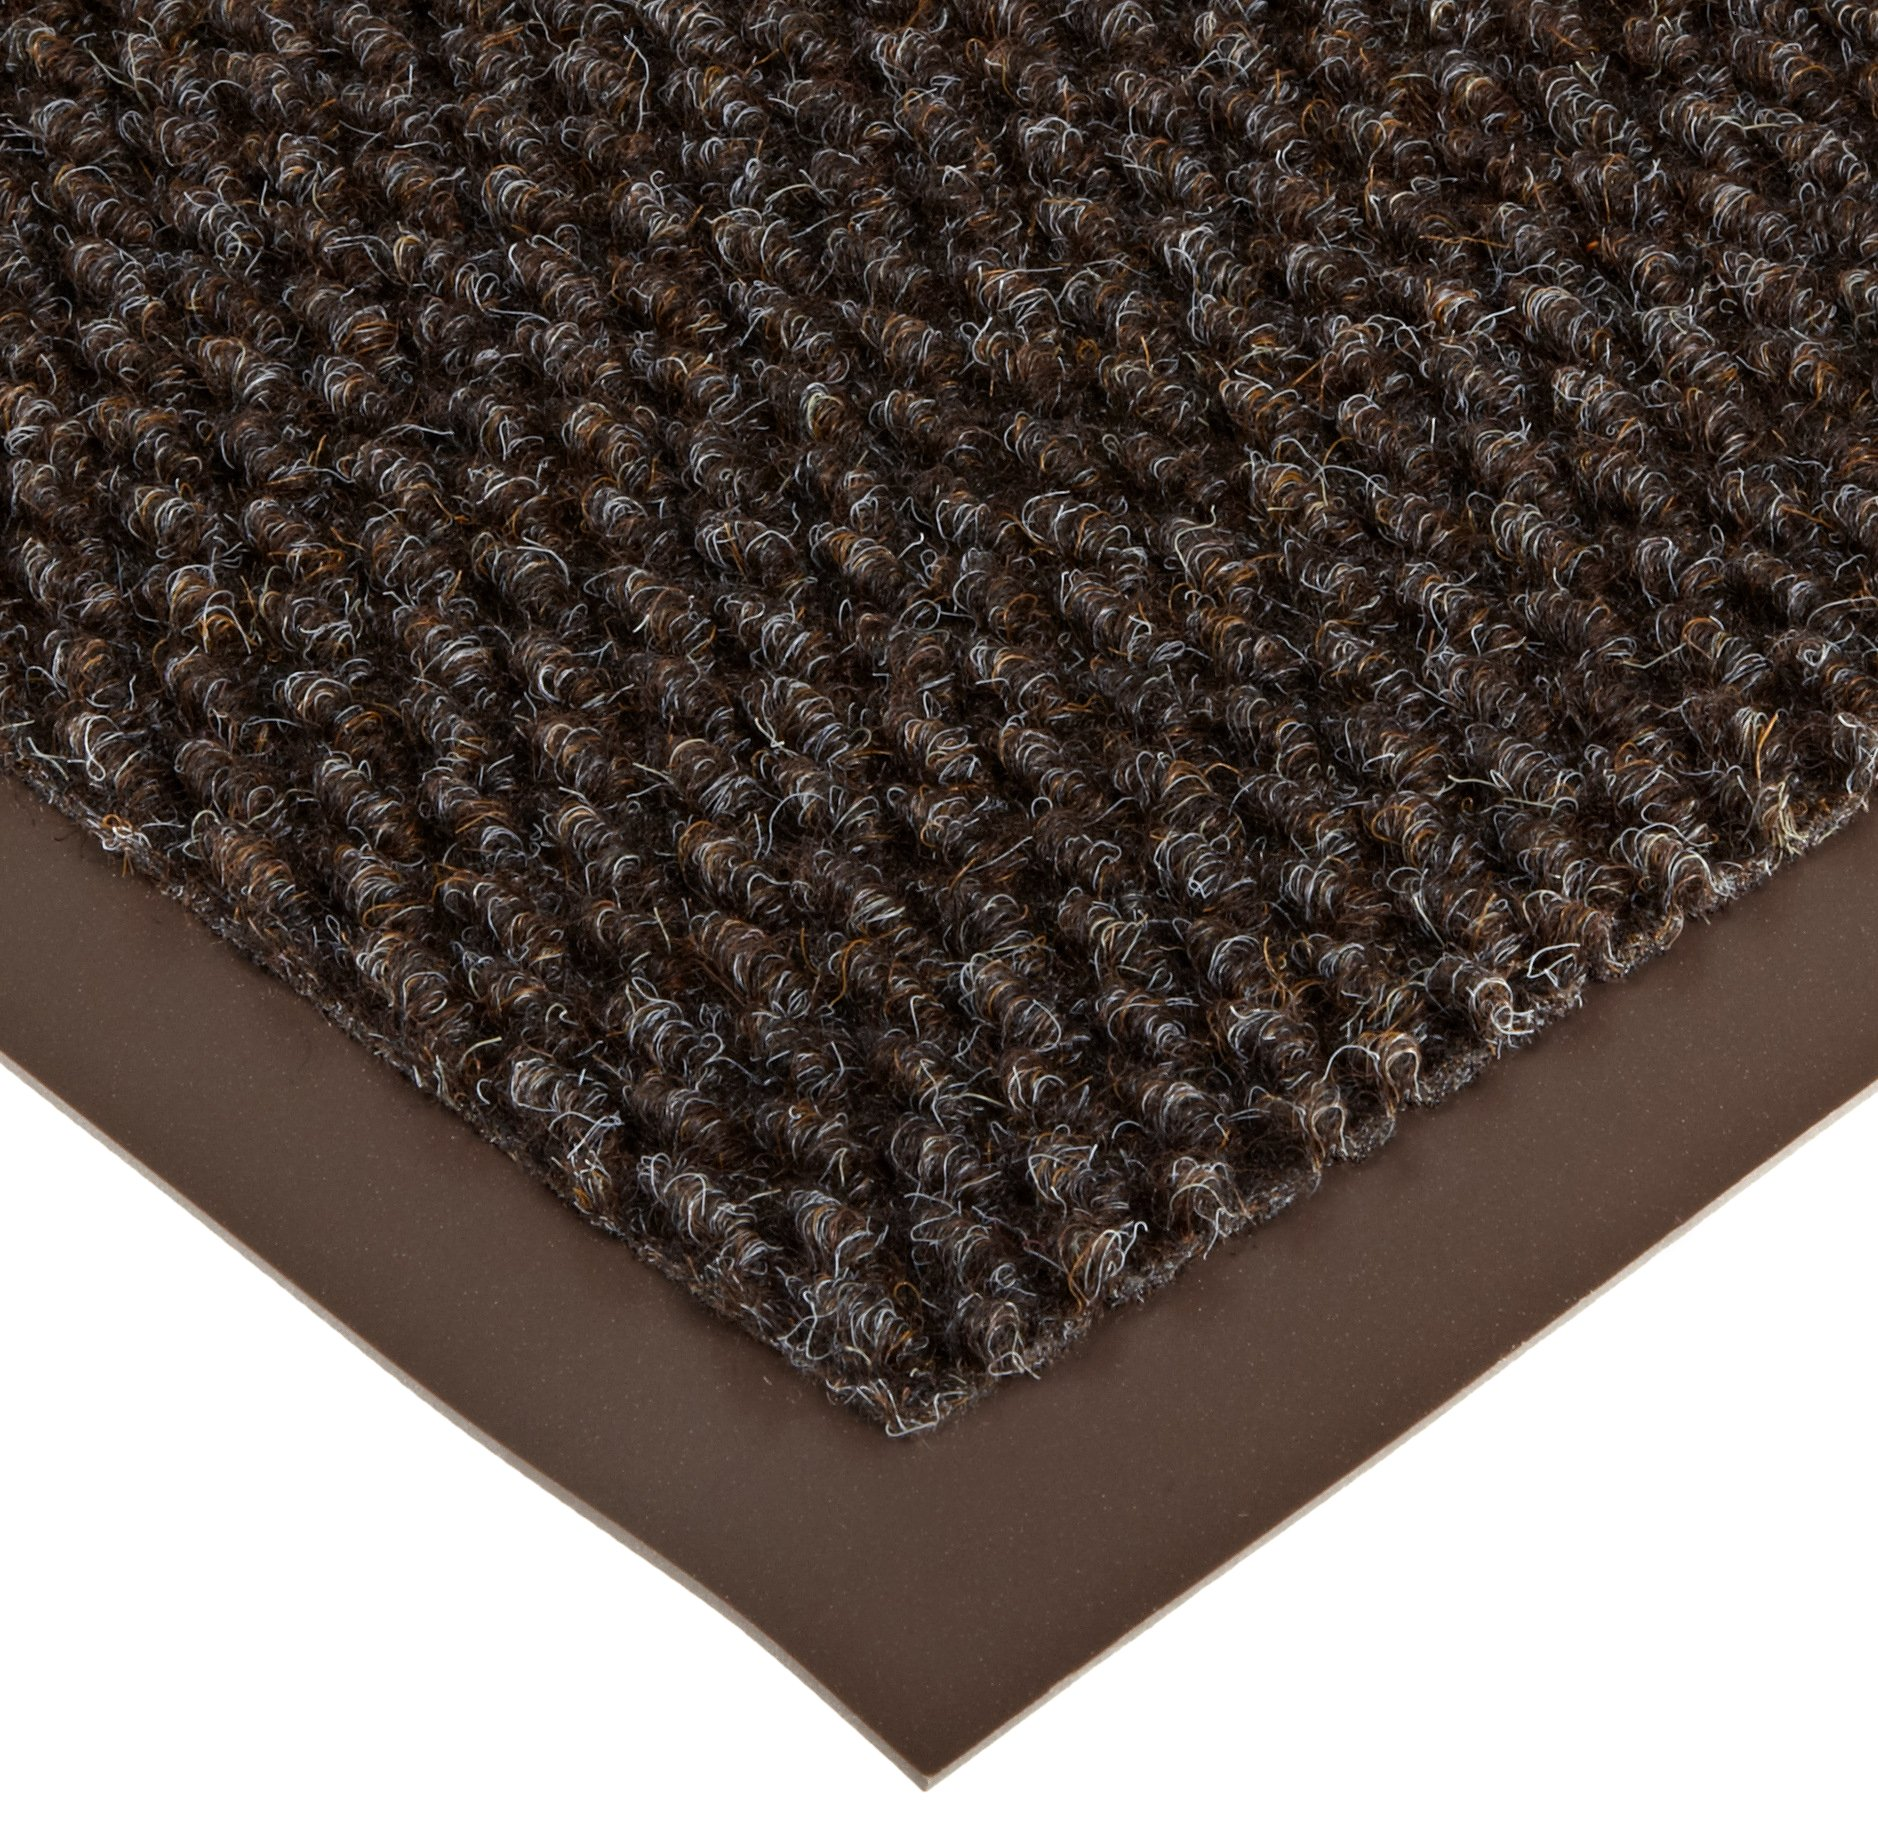 NoTrax AX-AY-ABHI-19843Notrax 136 Polynib Entrance Mat, for Lobbies and Indoor Entranceways, 2' Width x 3' Length x 1/4'' Thickness, Brown by NoTrax Floor Matting